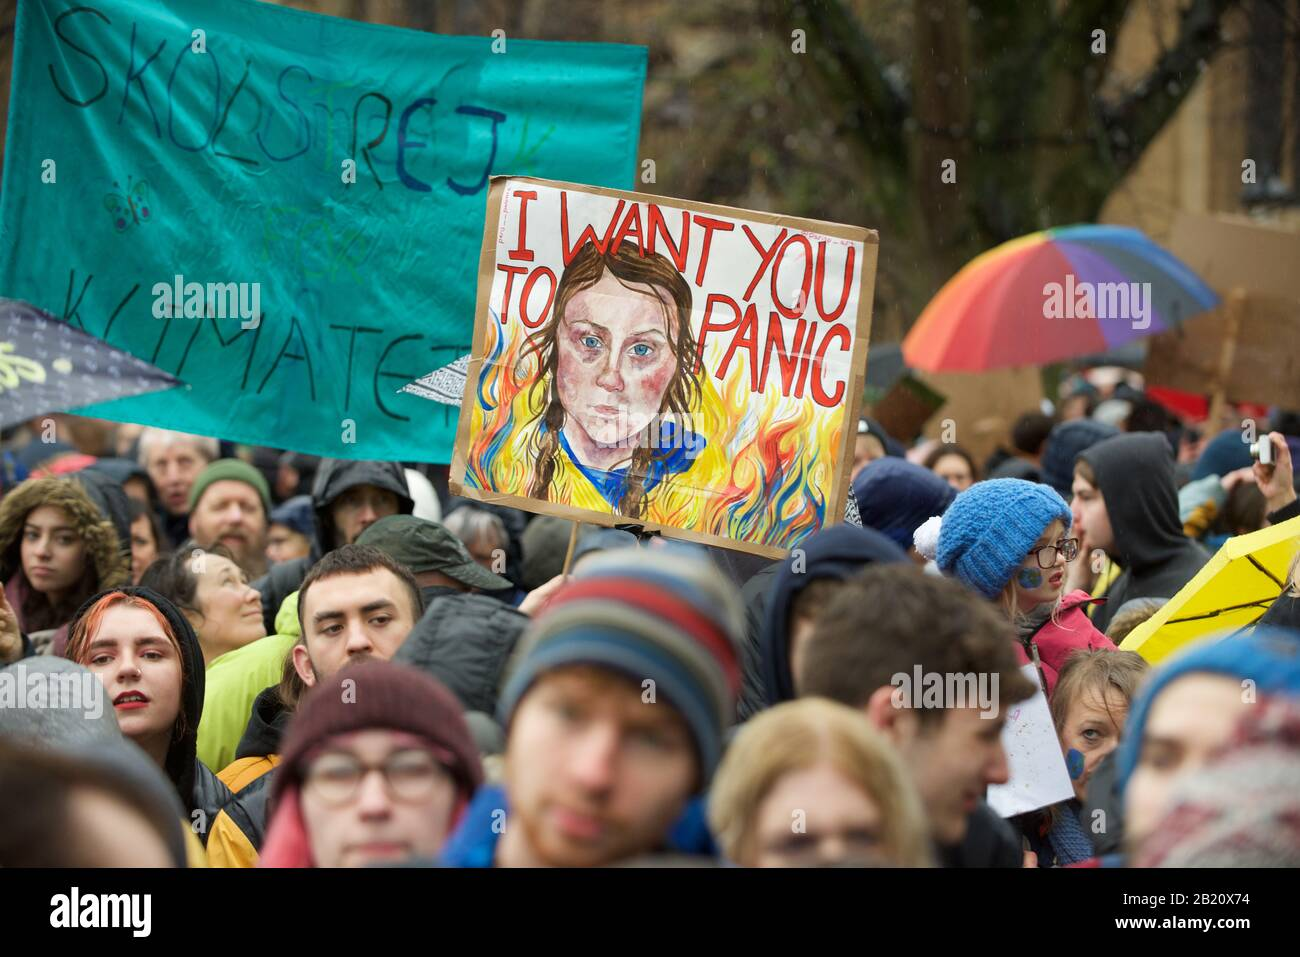 Bristol, UK. 28th Feb, 2020. 28.02.20. Greta Thunberg attends the School Strike in Bristol with over 30,000 other people. The school strike for the climate, AKA Fridays for Future, Youth for Climate and Youth Strike 4 Climate, is an international movement of school students who take time off from class to participate in demonstrations to demand action to deal with the Climate & Ecological Emergency Credit: Gareth Morris/Alamy Live News Stock Photo